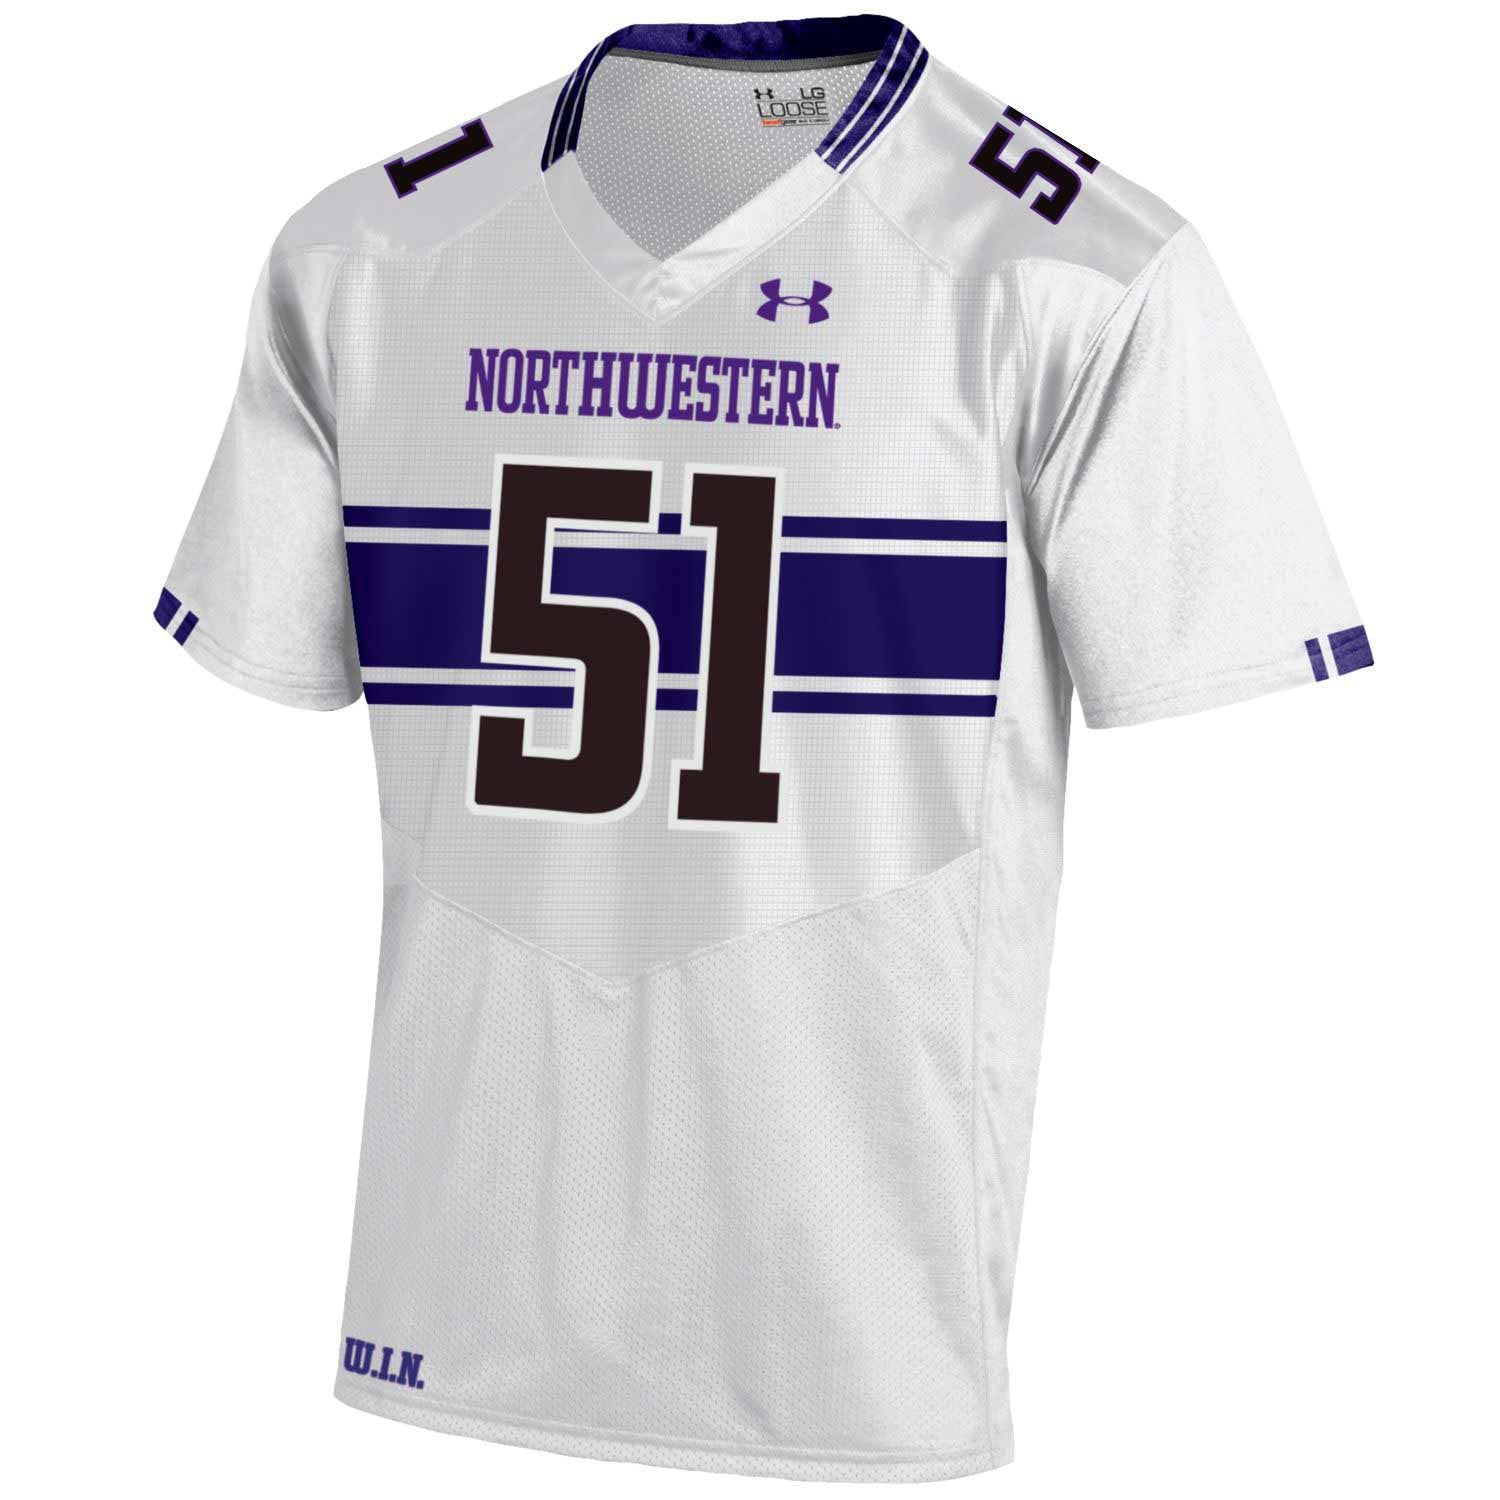 Northwestern Wildcats Under Armour® Adult Football Replica Jersey - White -